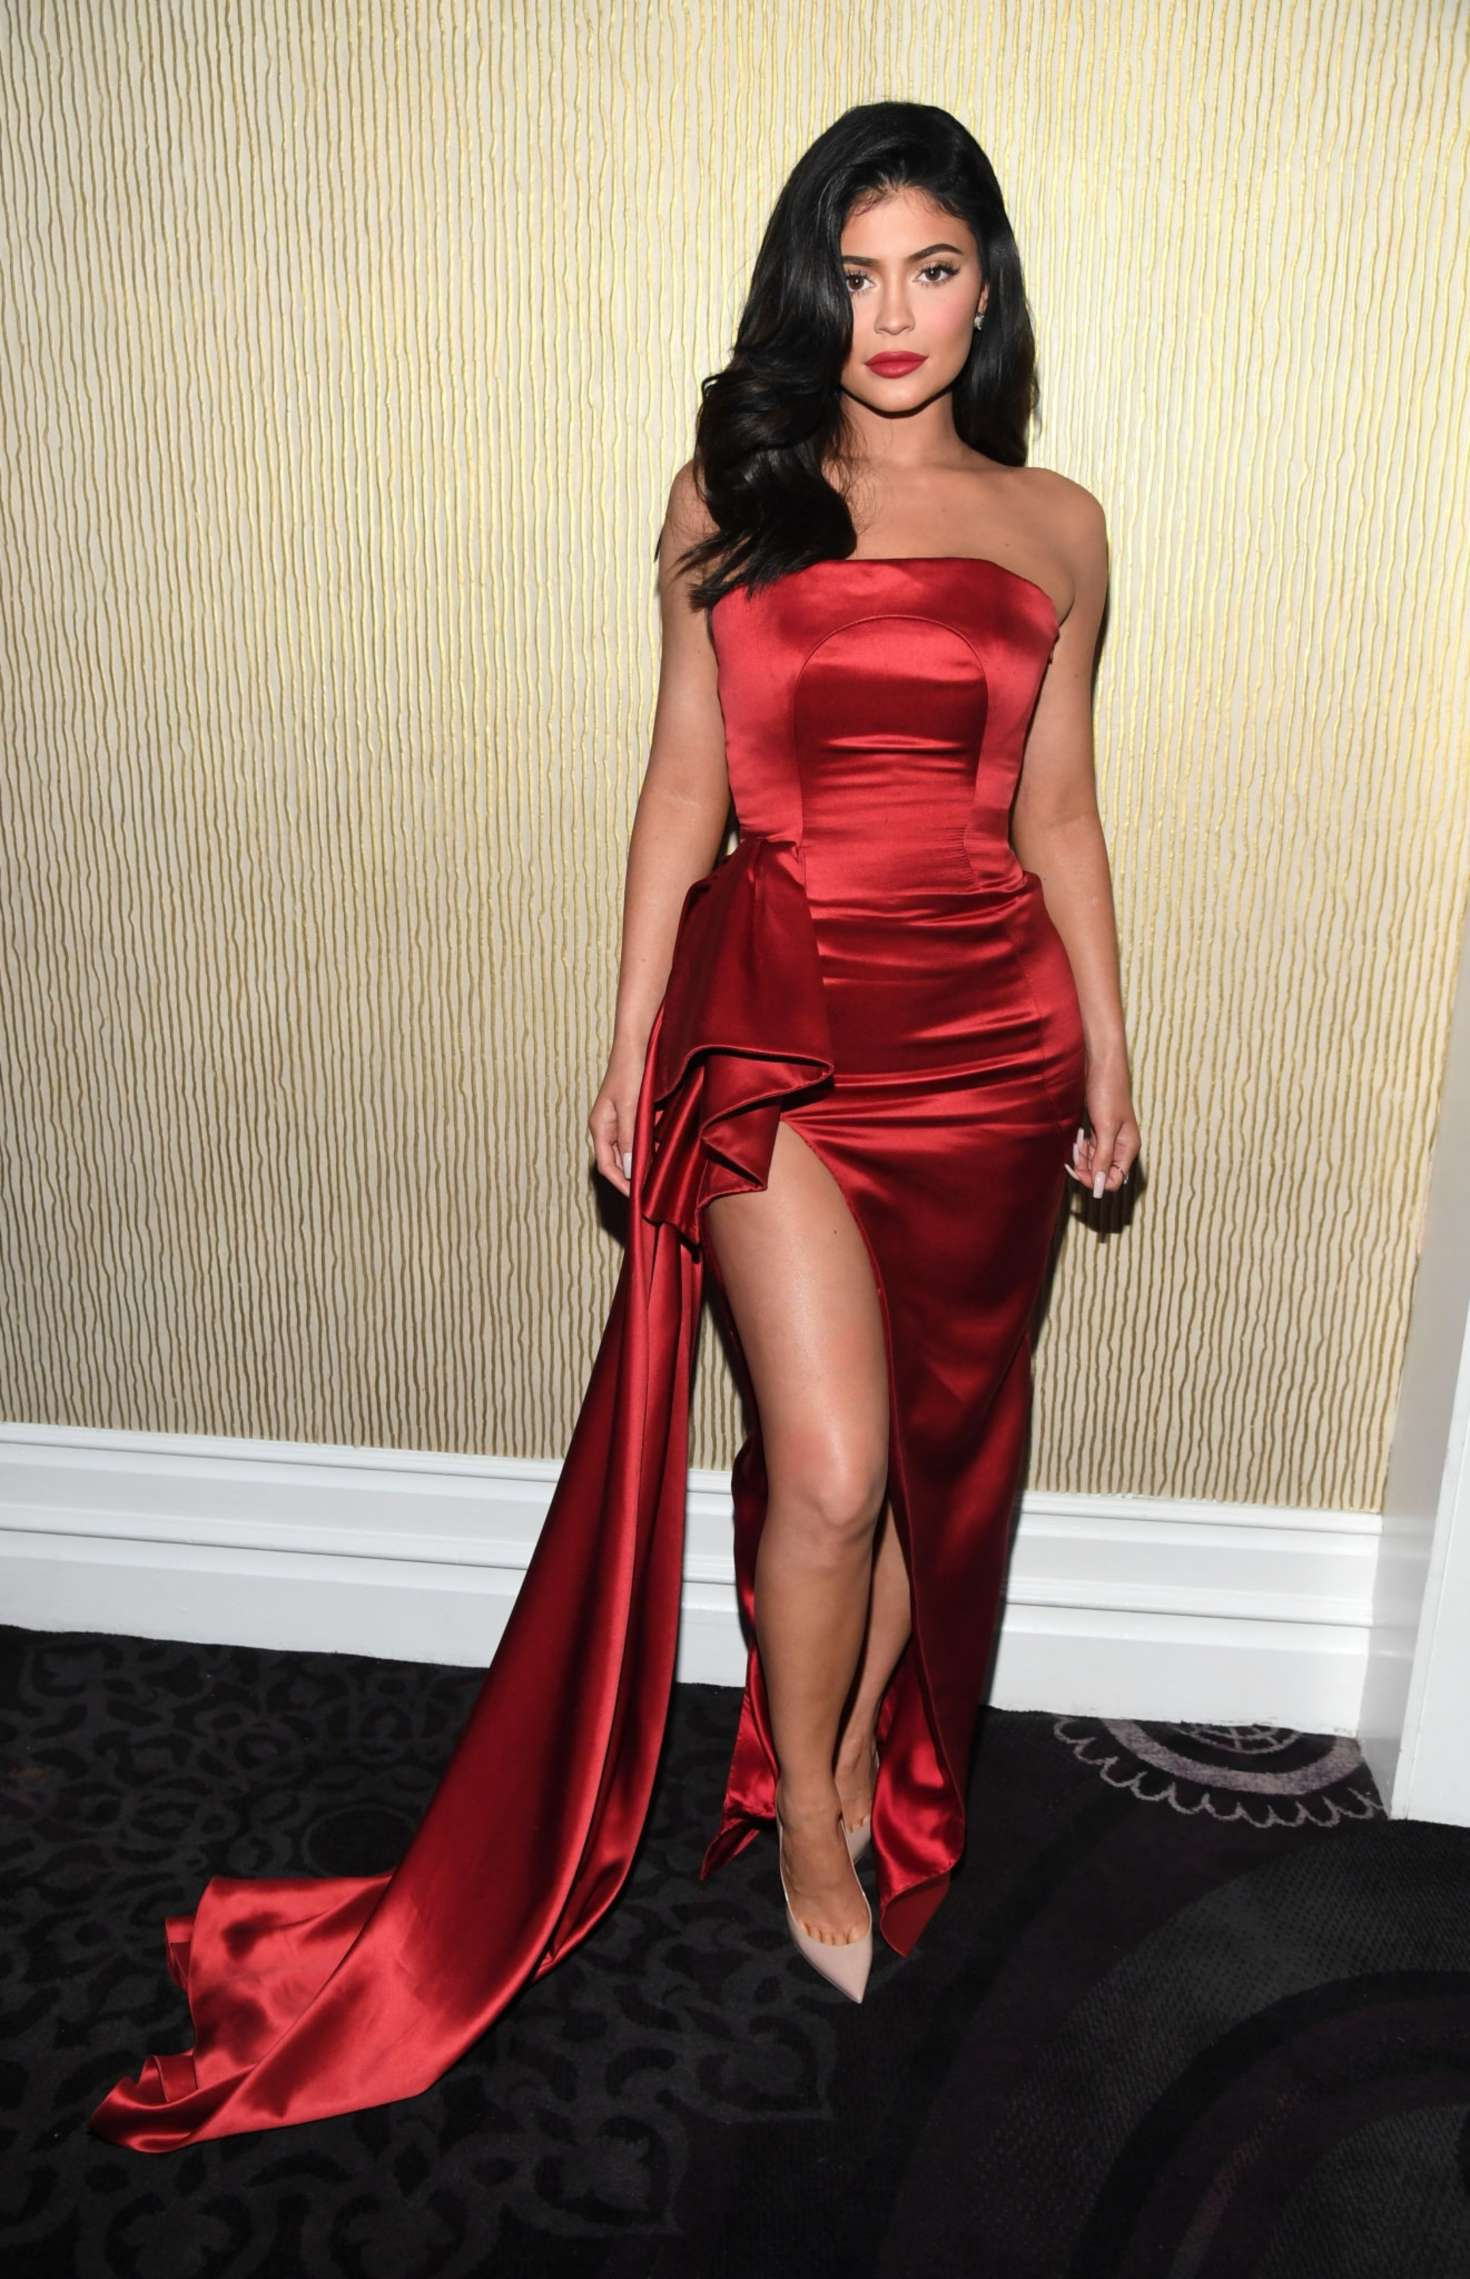 Kylie Jenner wearing a slinky shiny scarlet gown with a satin material and ruffled